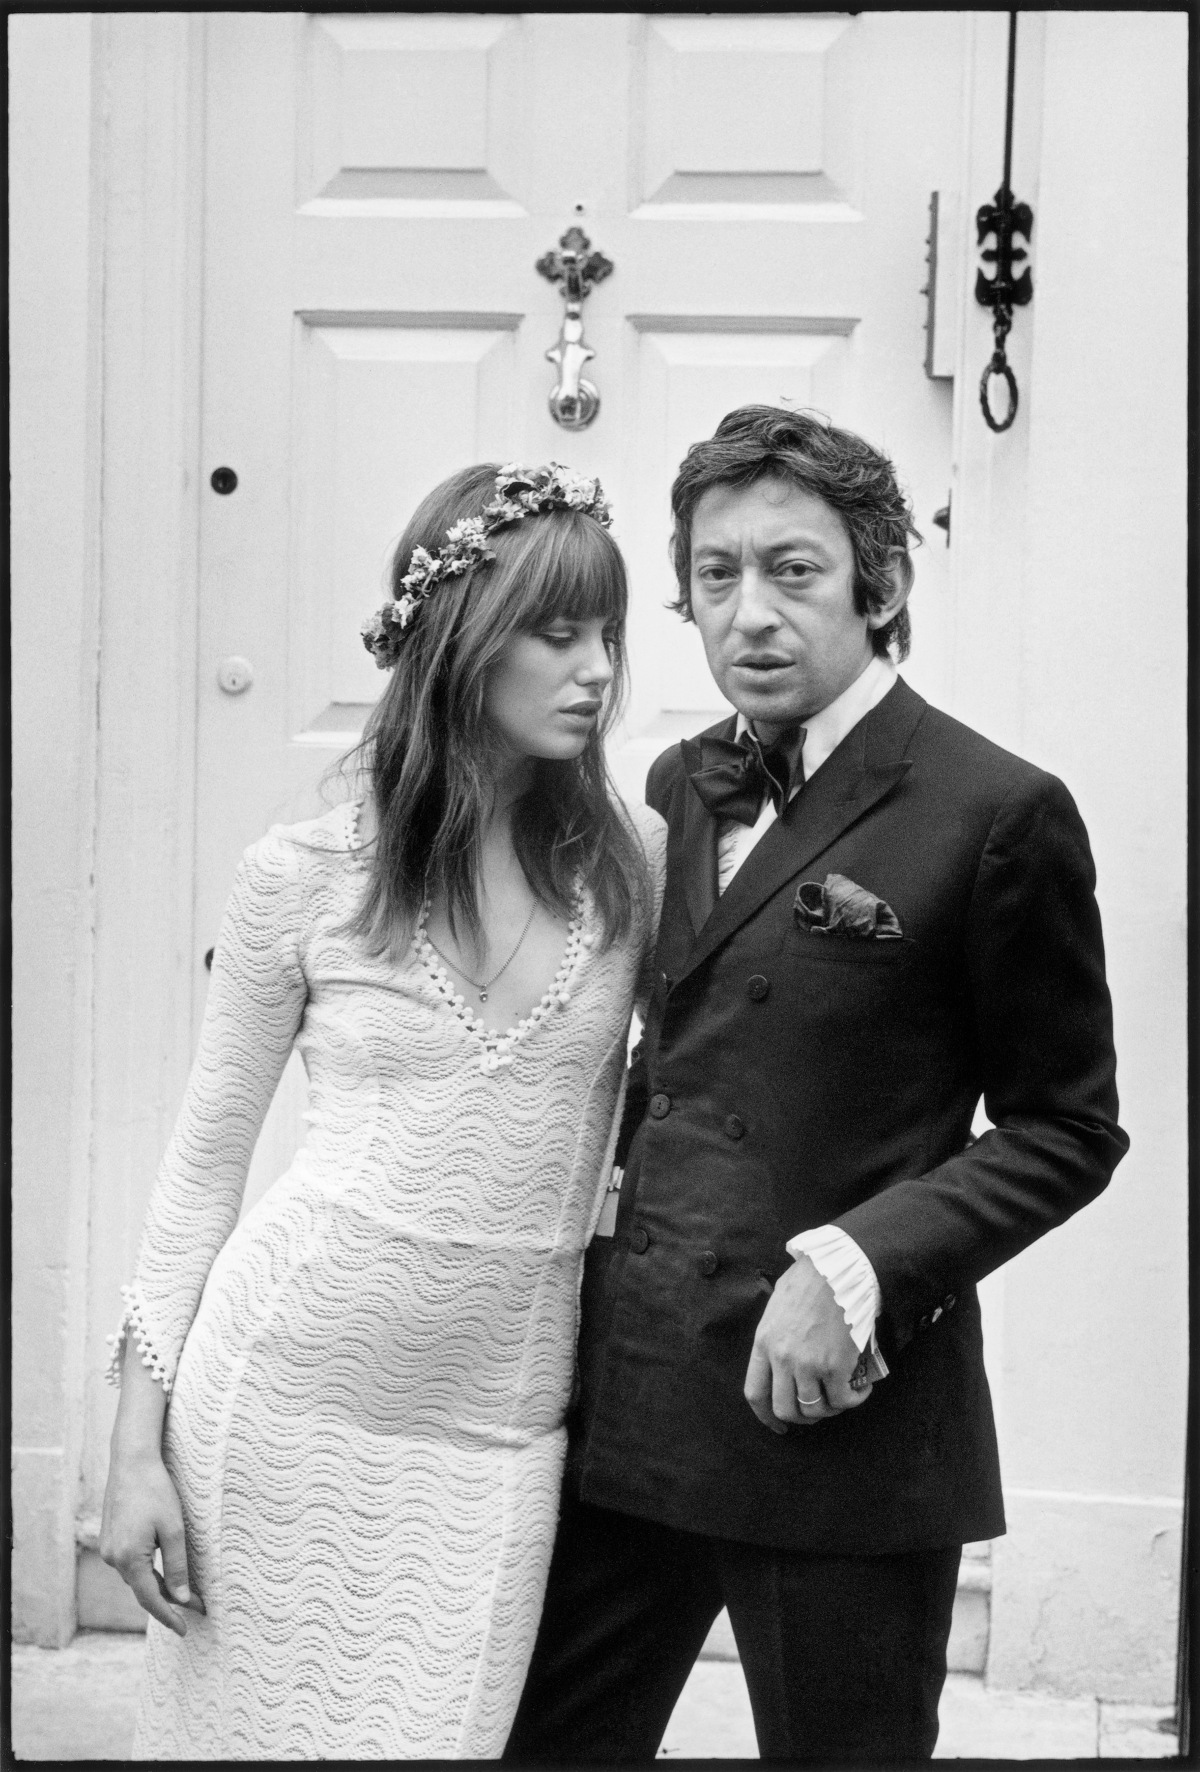 Mariage-a-Londres-1970